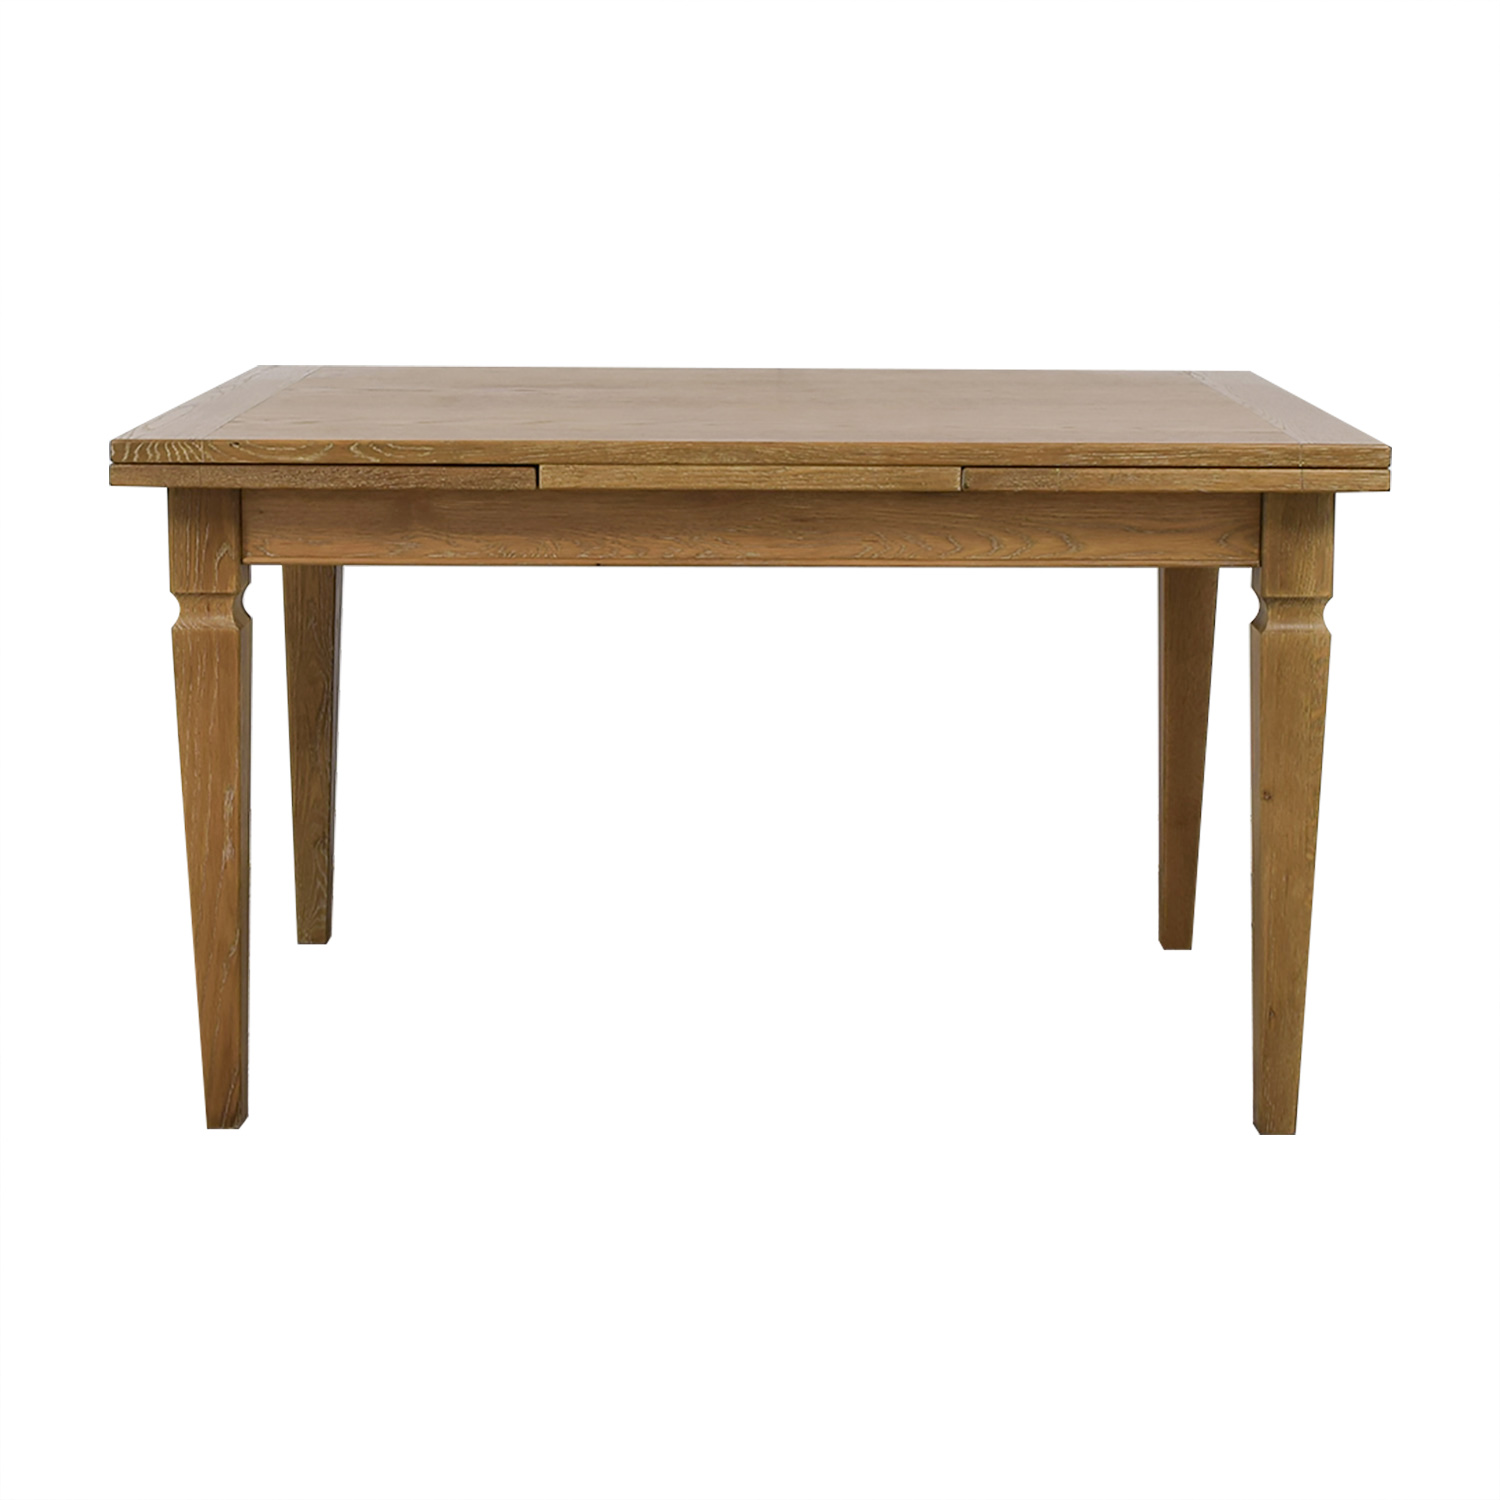 Arhaus Luciano Dining Table Arhaus